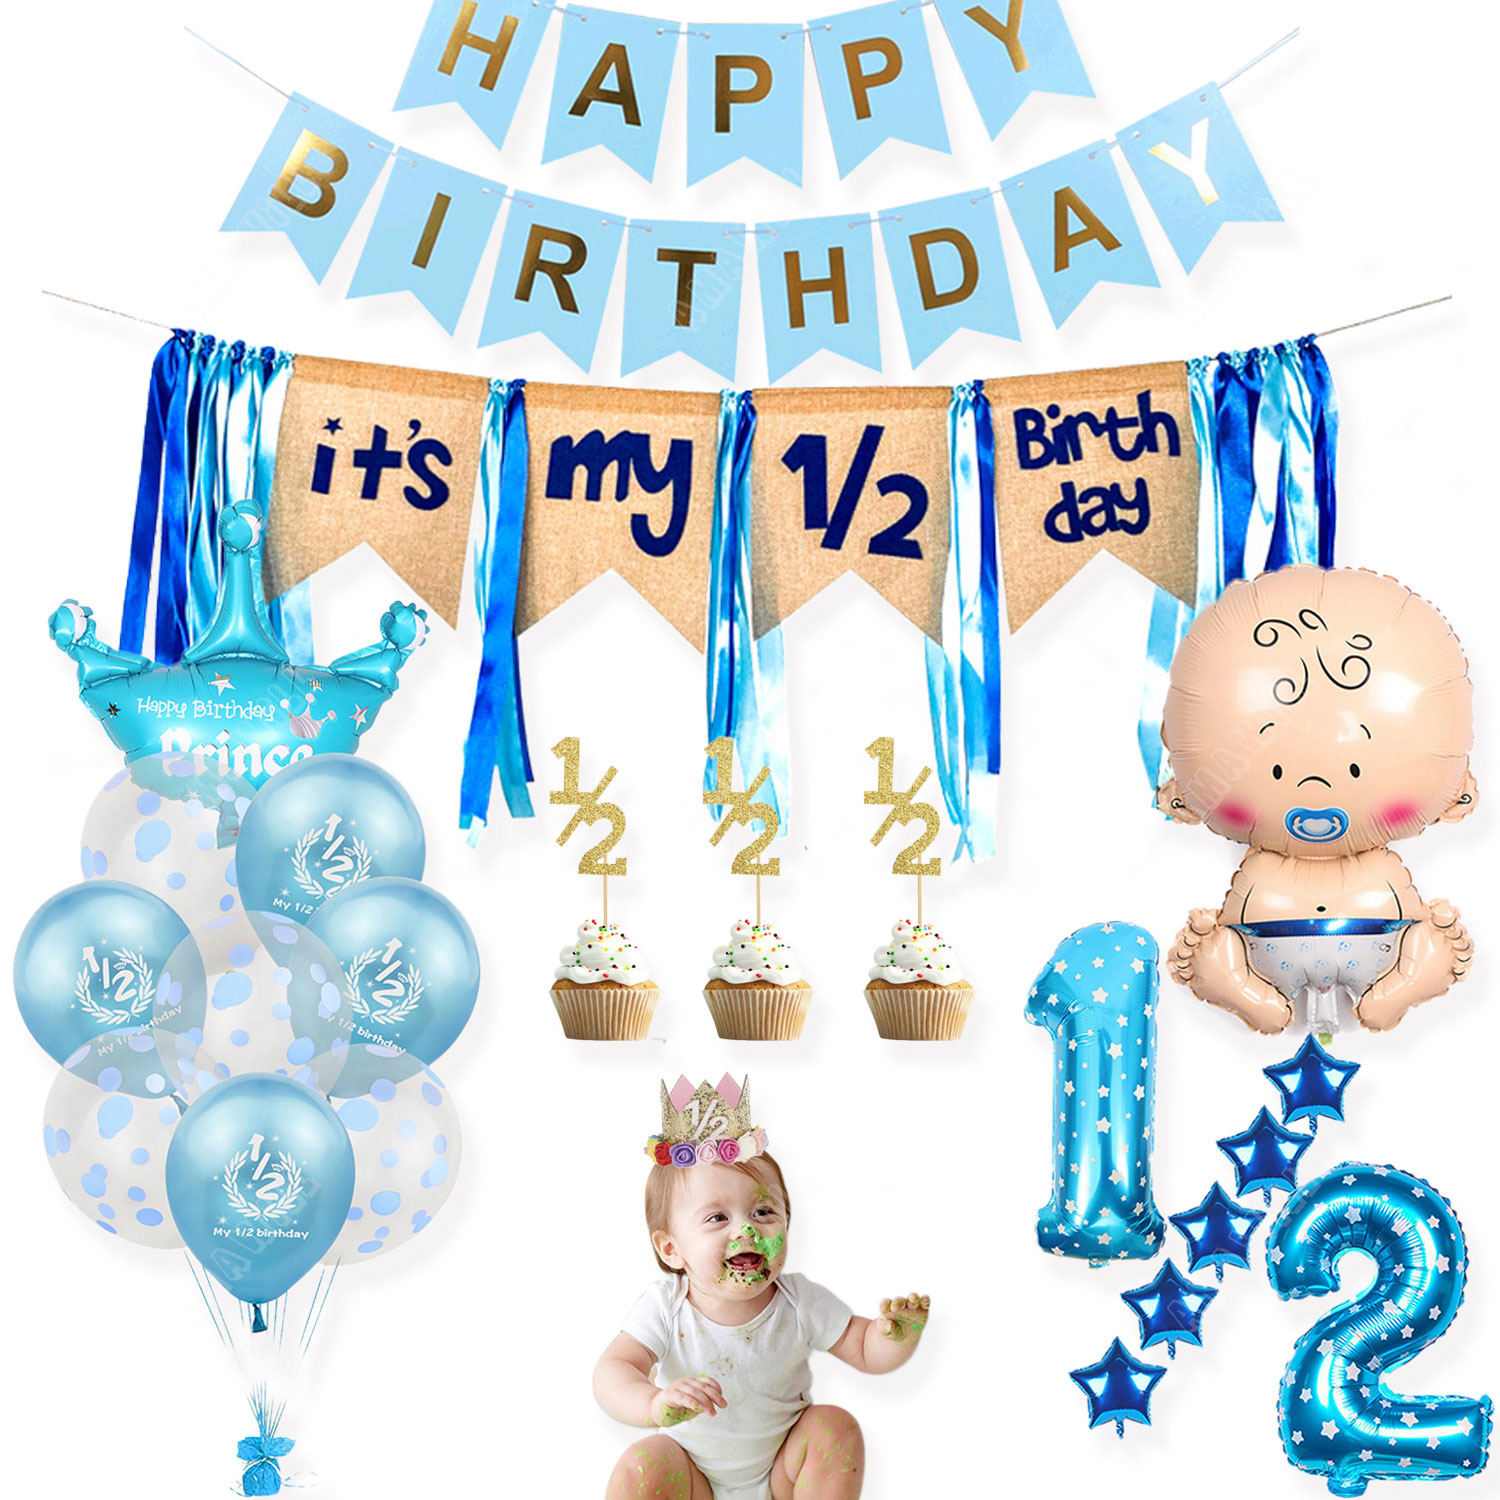 jungle animal theme 1 12 months photo frame banner baby 1st birthday decorations baby boy girl my first one year party supplies Baby Shower Theme Party It's My 1/2 Birthday Balloons Banner Cake Toppers Crown Hat Boy Girl 6 Months Half Birthday Decorations